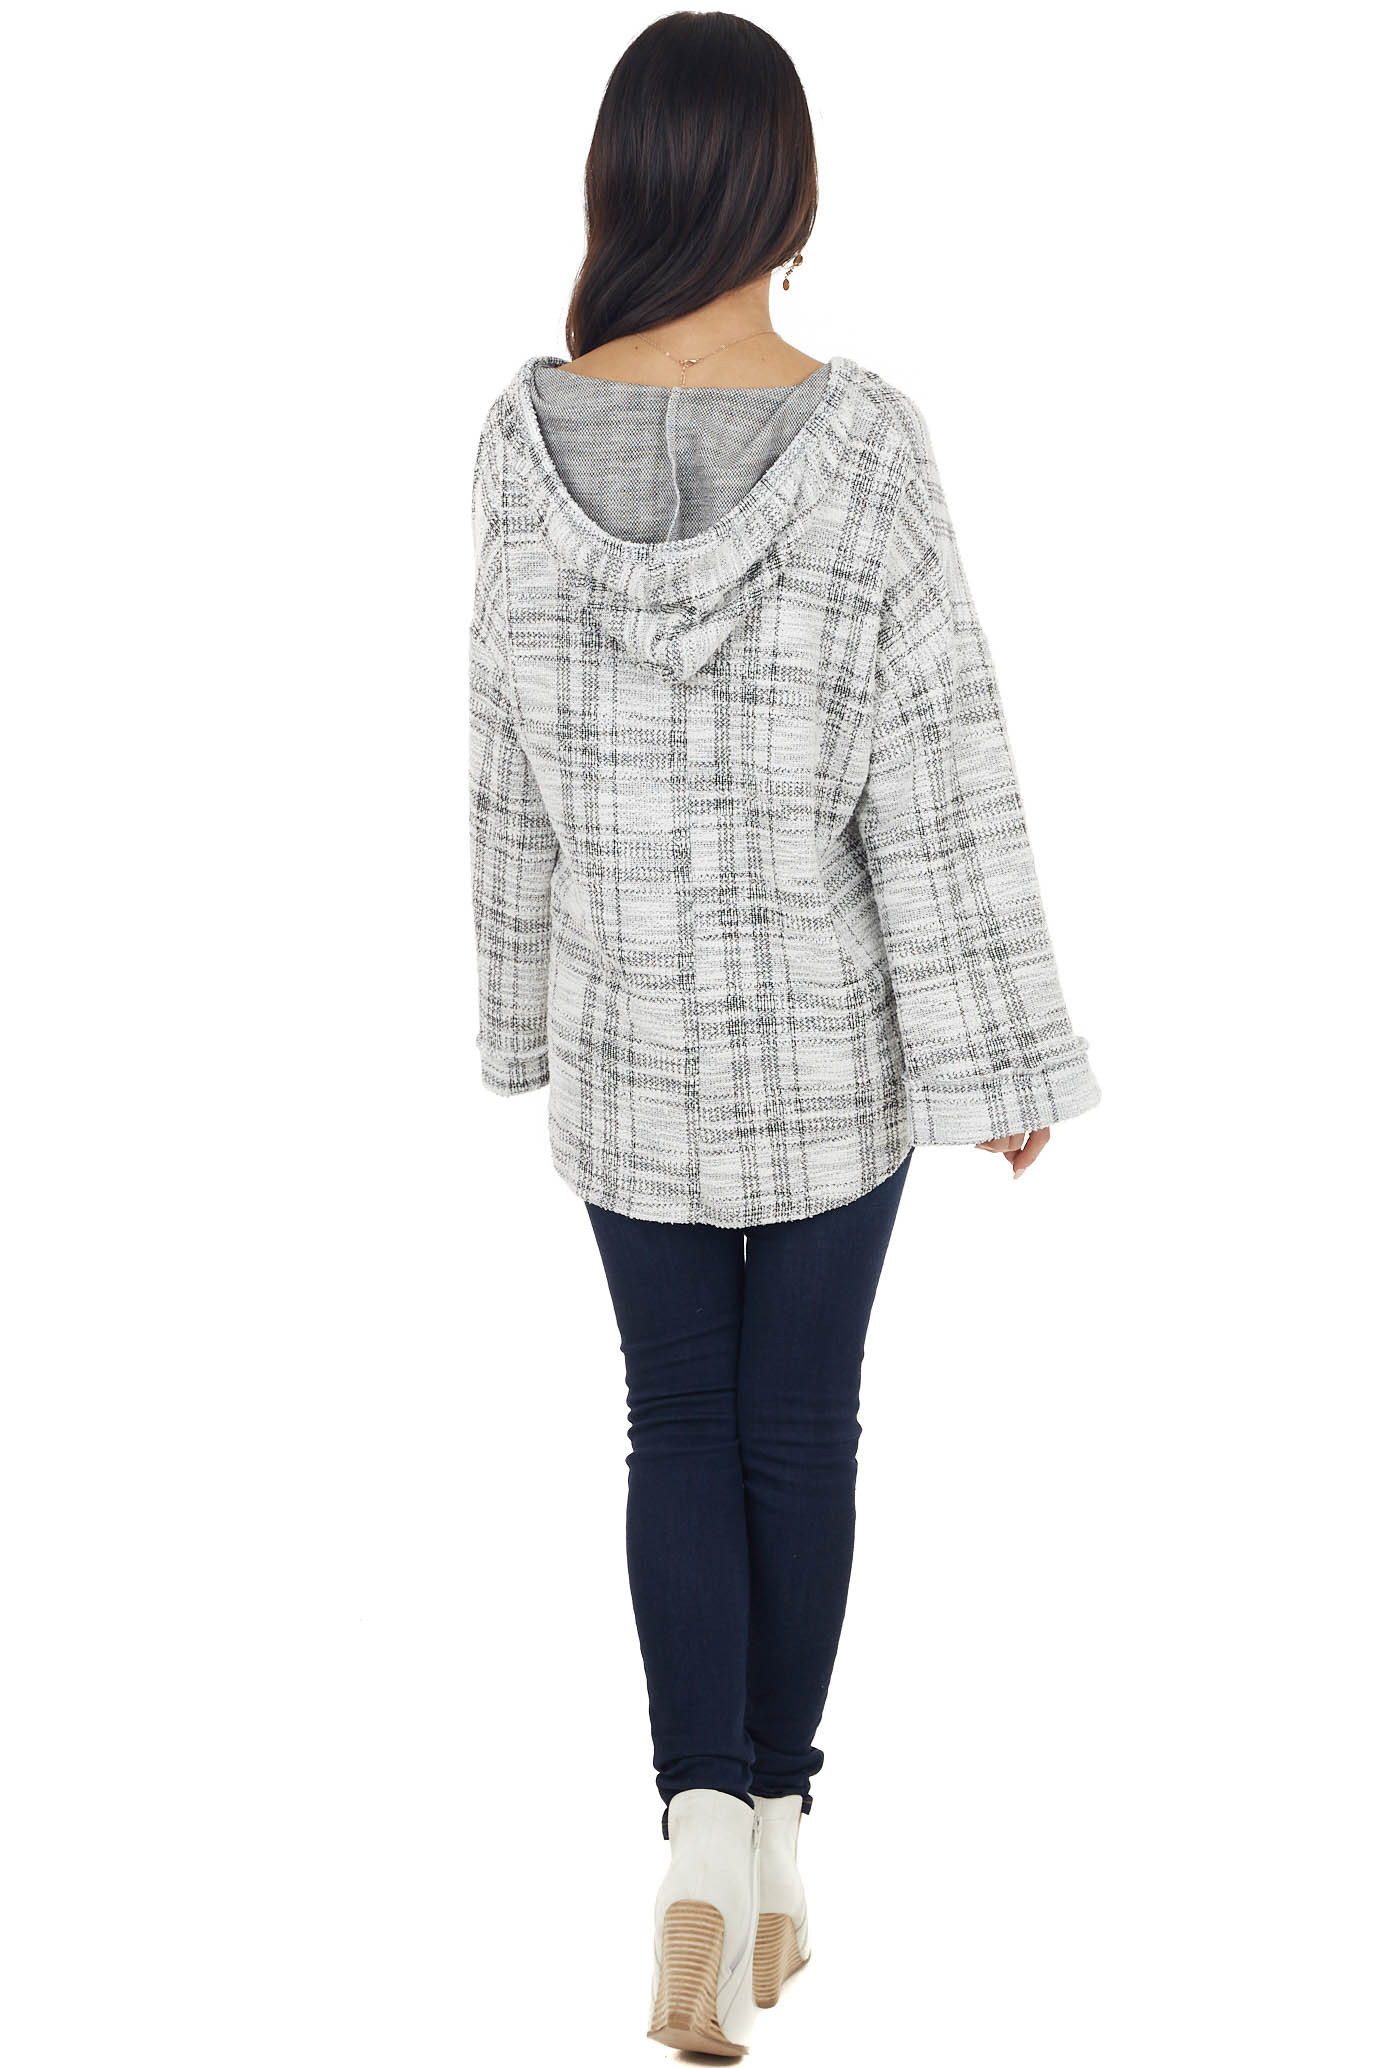 Black and Ivory Long Loose Sleeve Knit Top with Hood